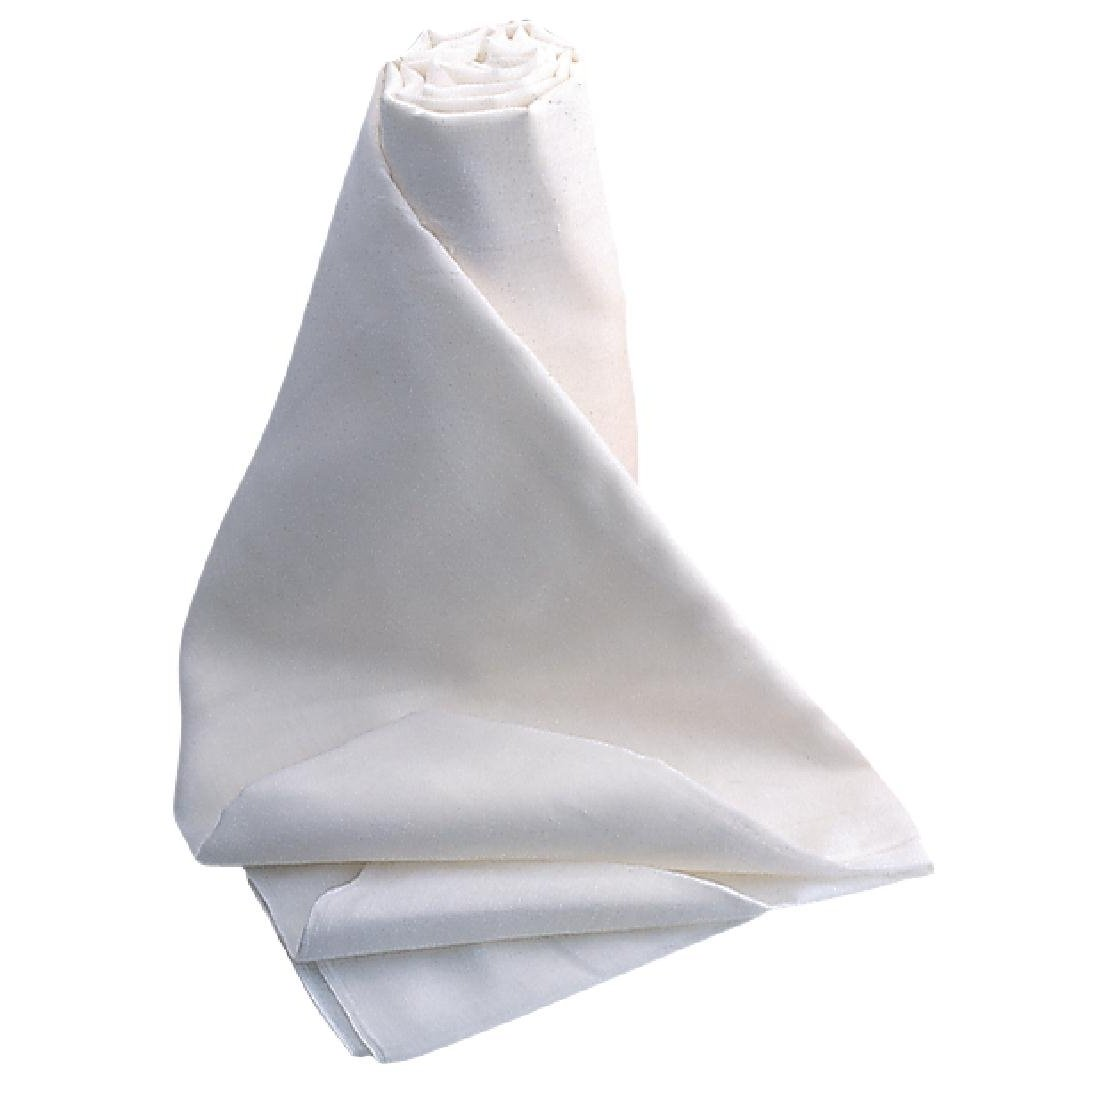 MUSLIN ROLL: Food grade, 100% cotton. Good to buy as a roll, so you can cut to size. -